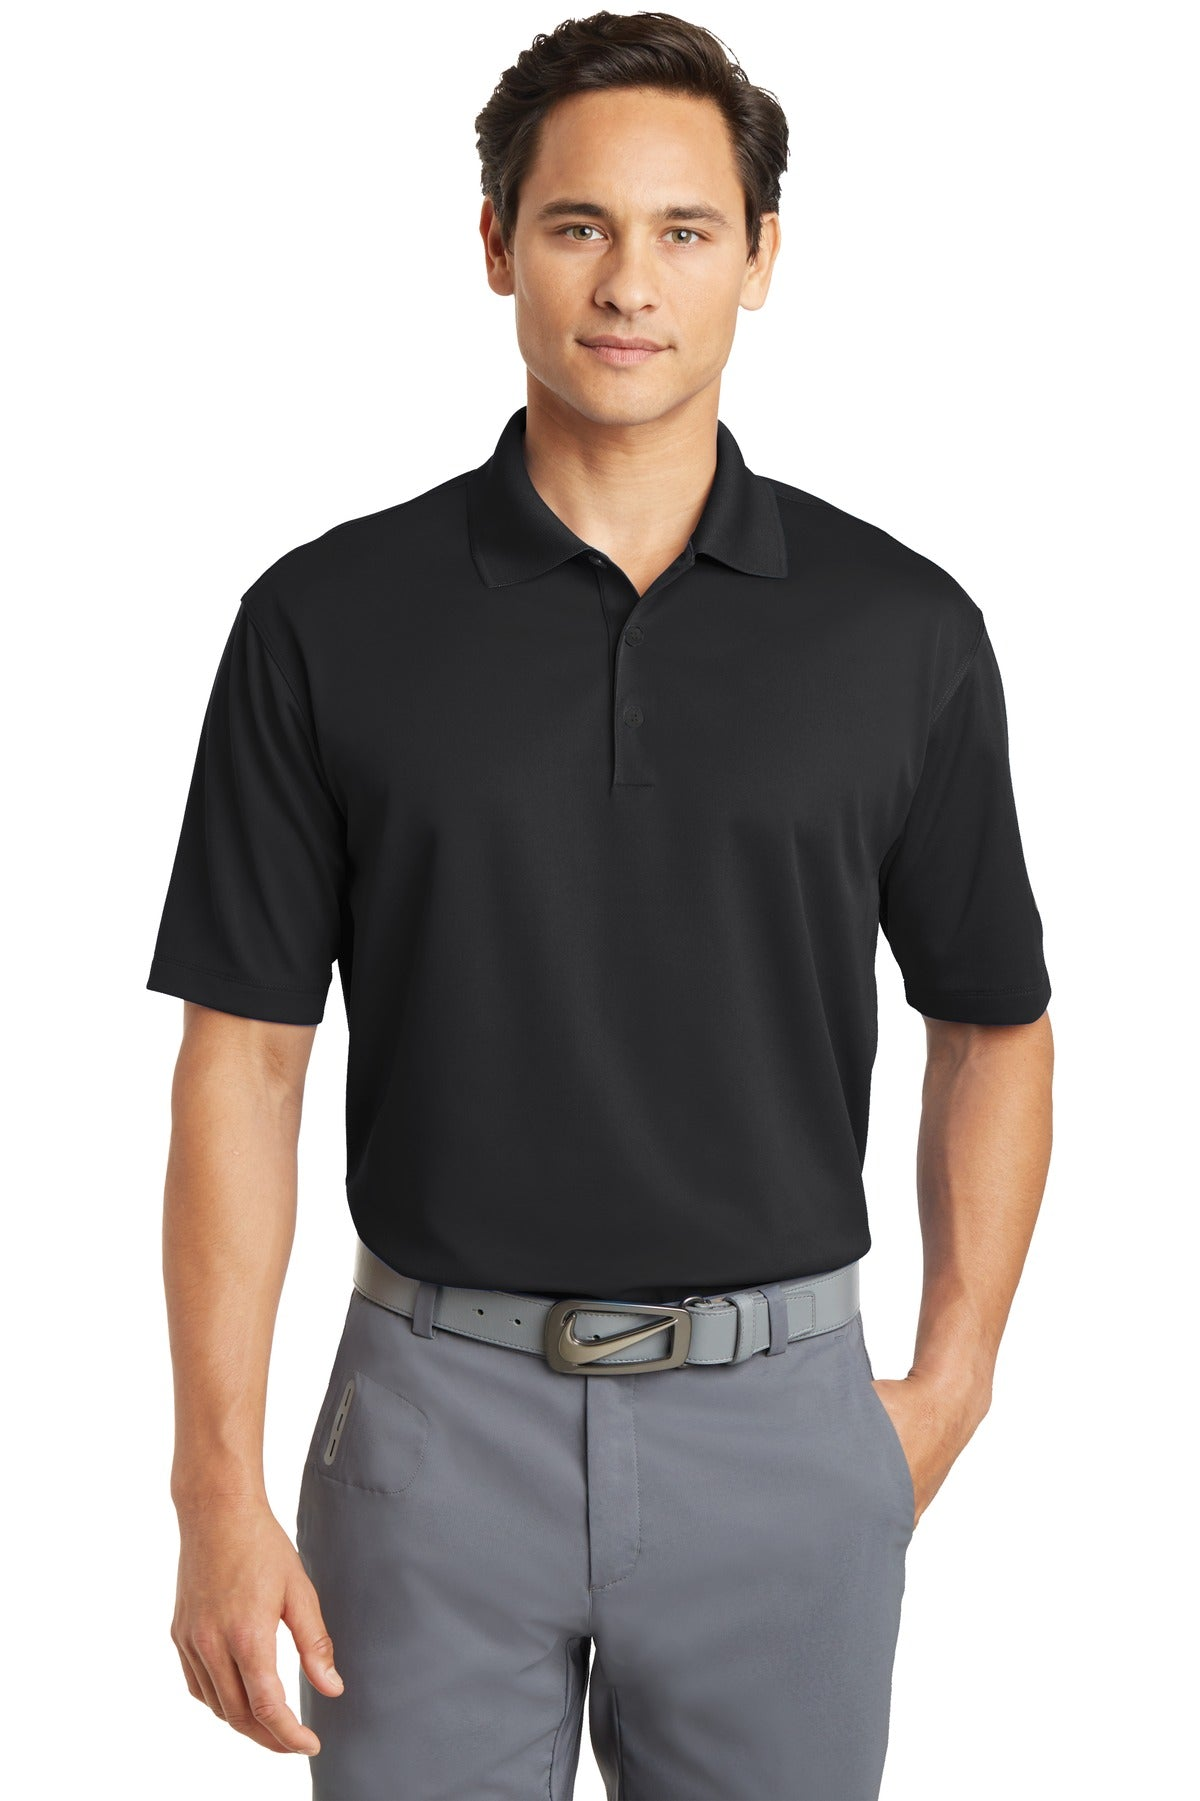 Black Nike Tall Dri-FIT Micro Pique Polo.